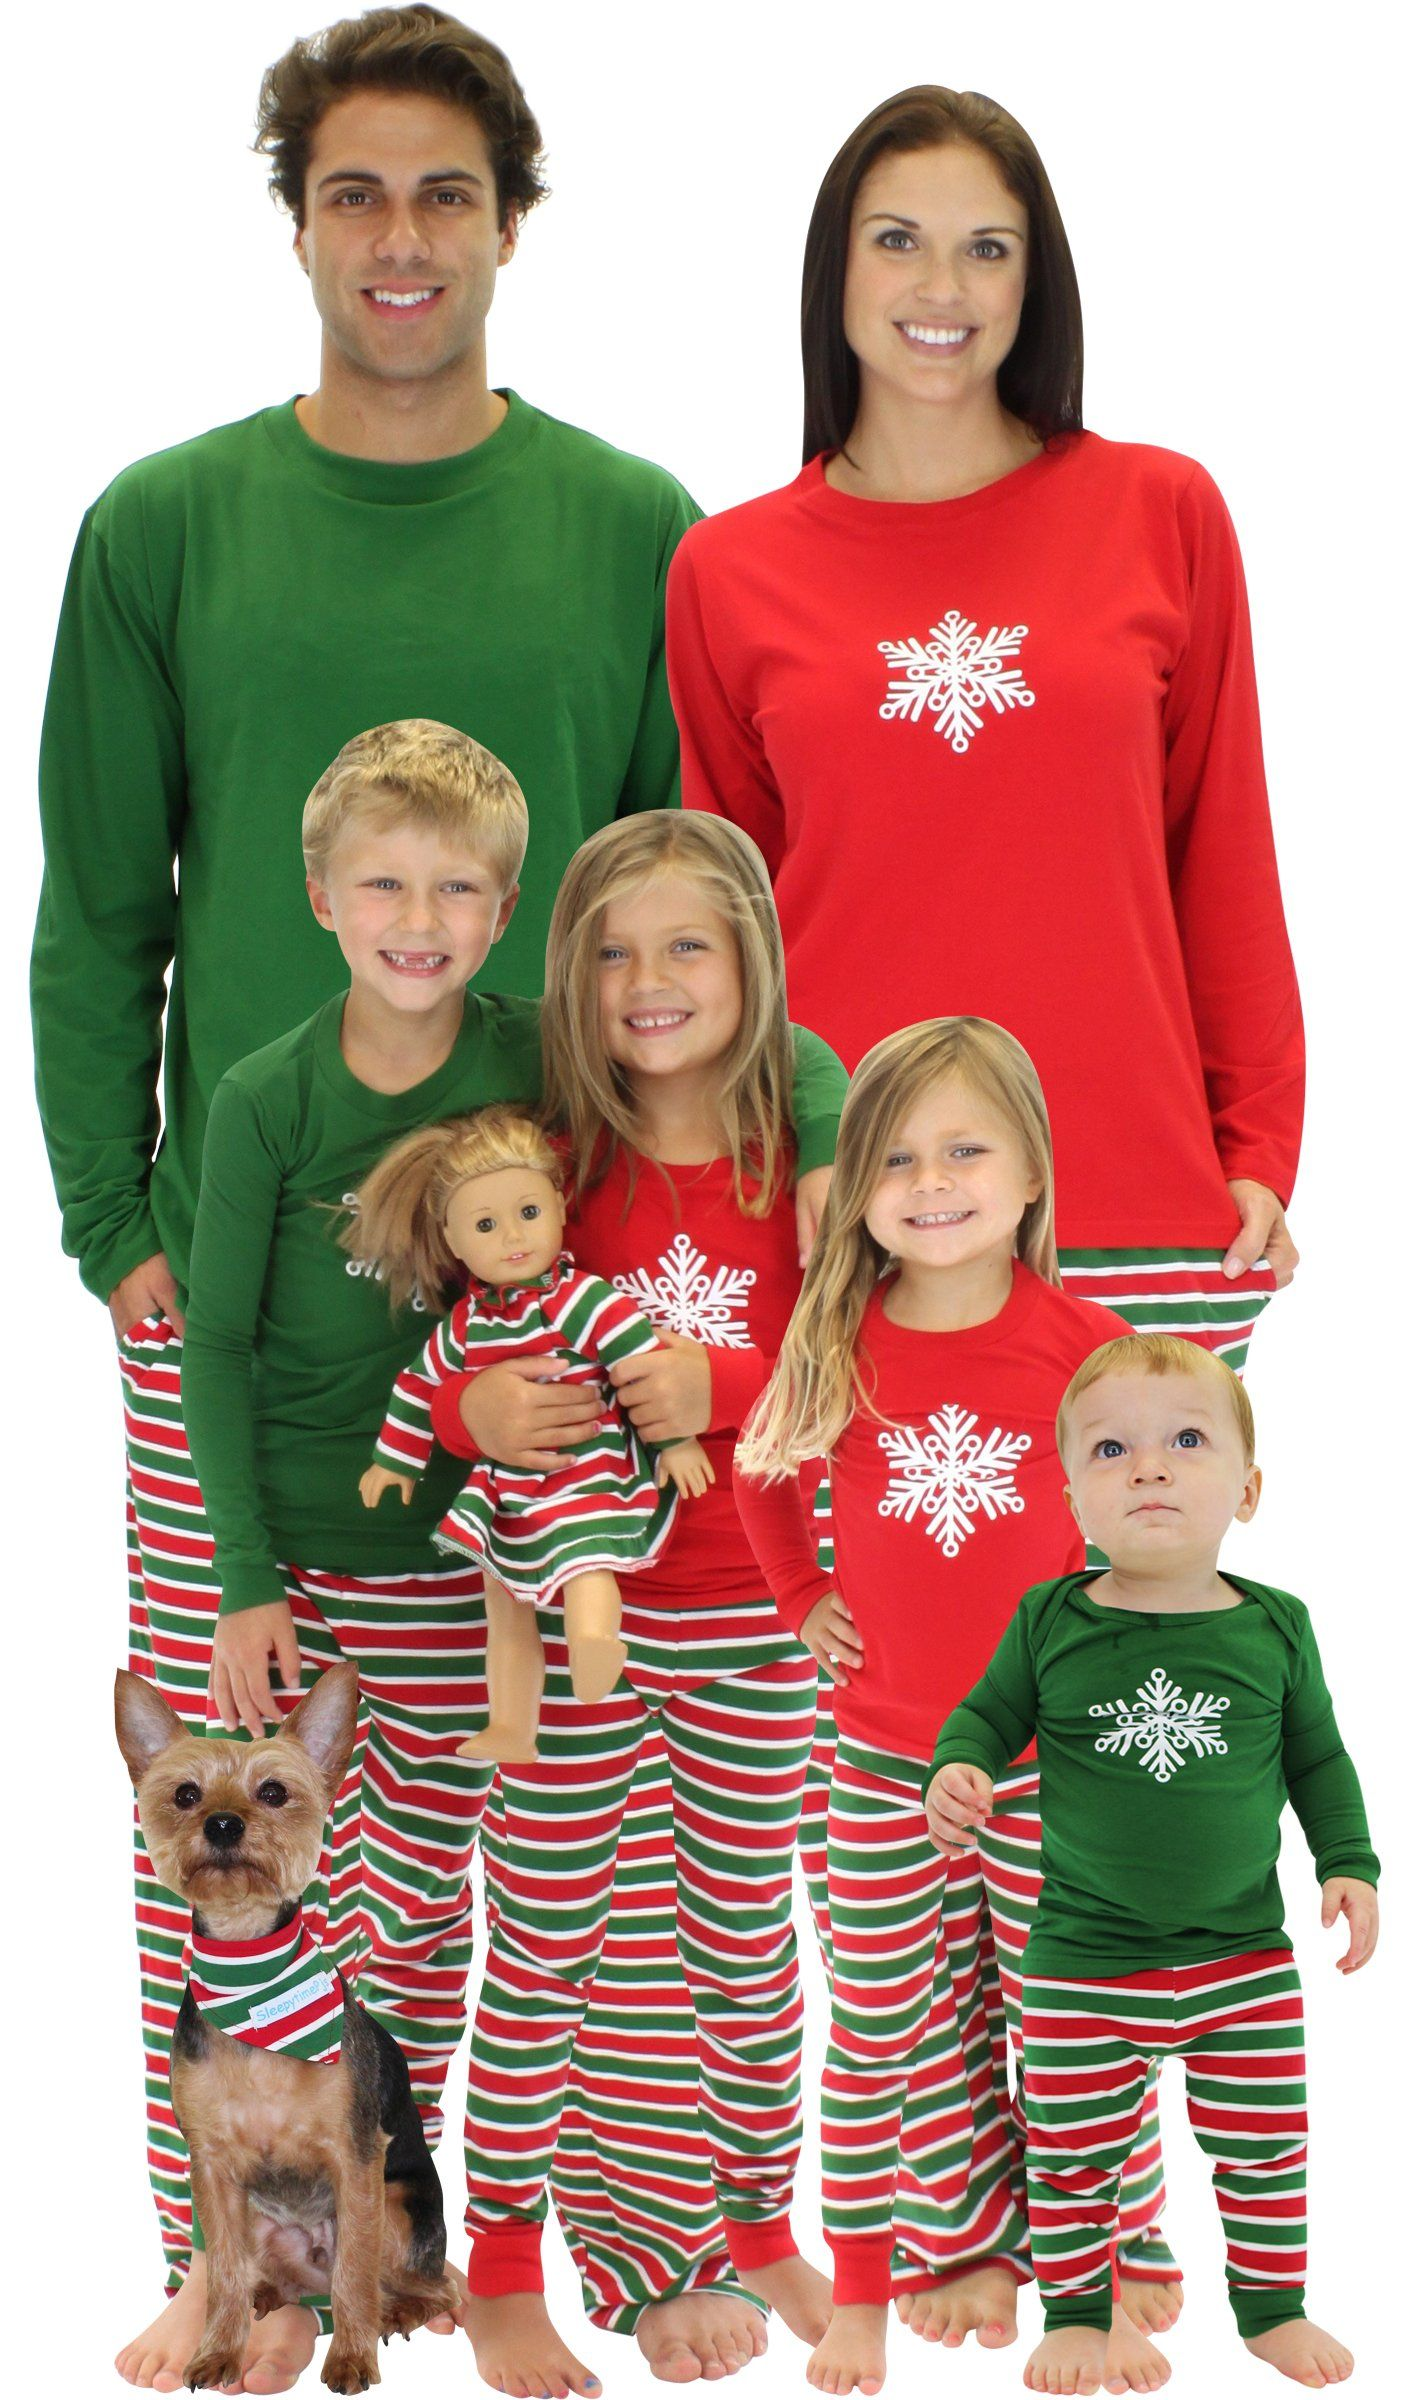 SleepytimePjs Christmas Family Matching Pajamas (FM